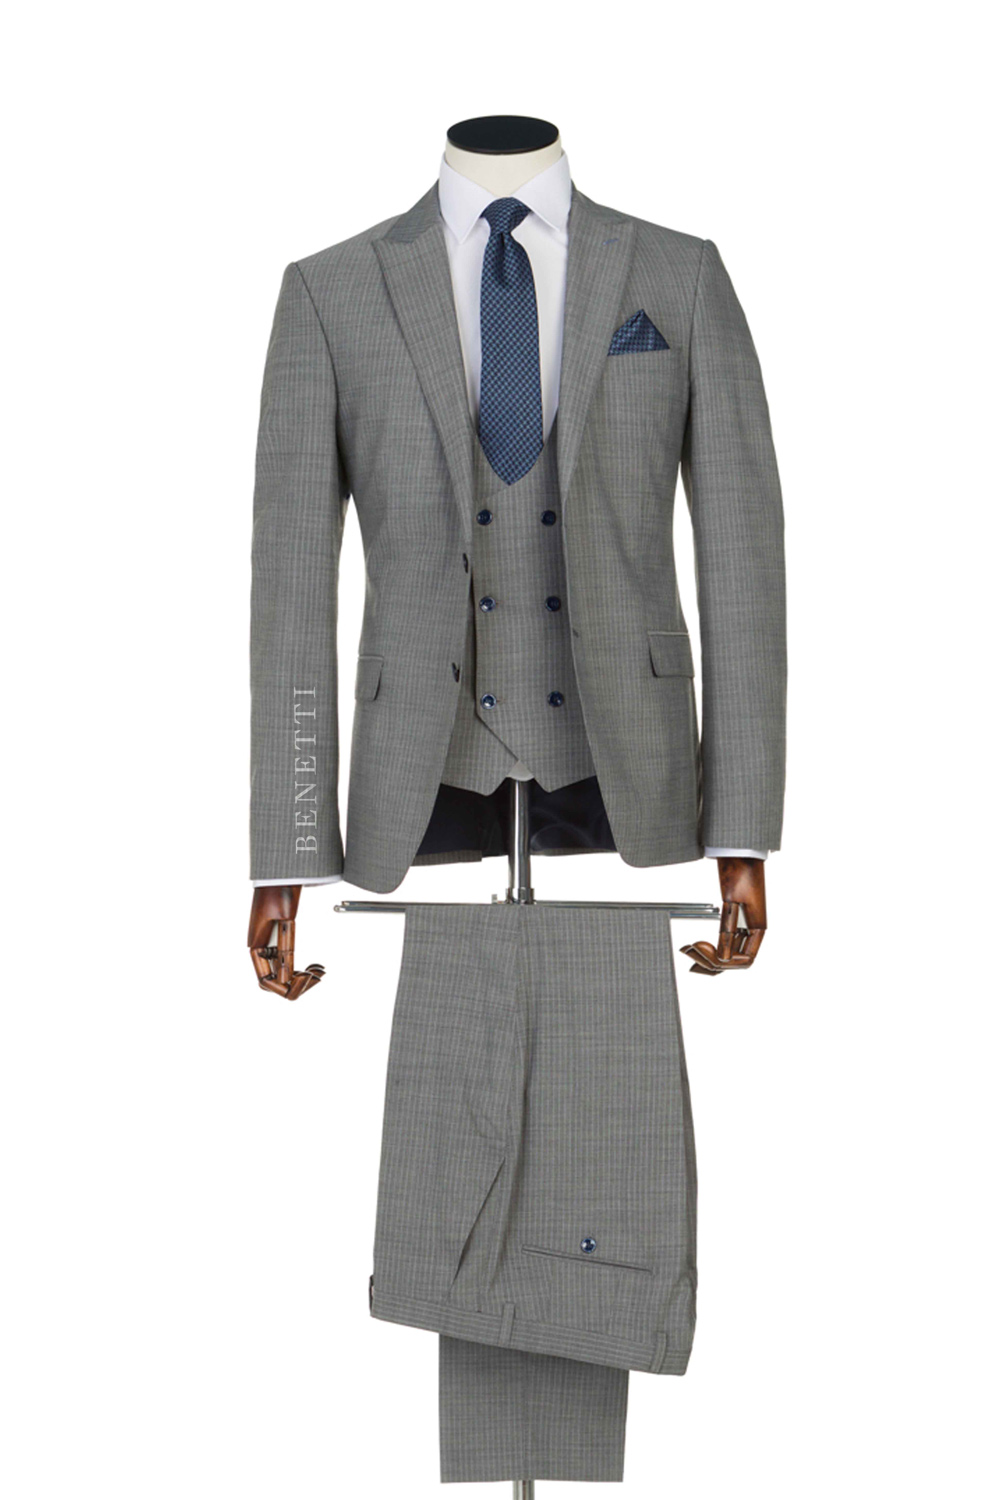 Powder Grey 3 Piece Peak Suit Tom Murphy S Formal And Menswear